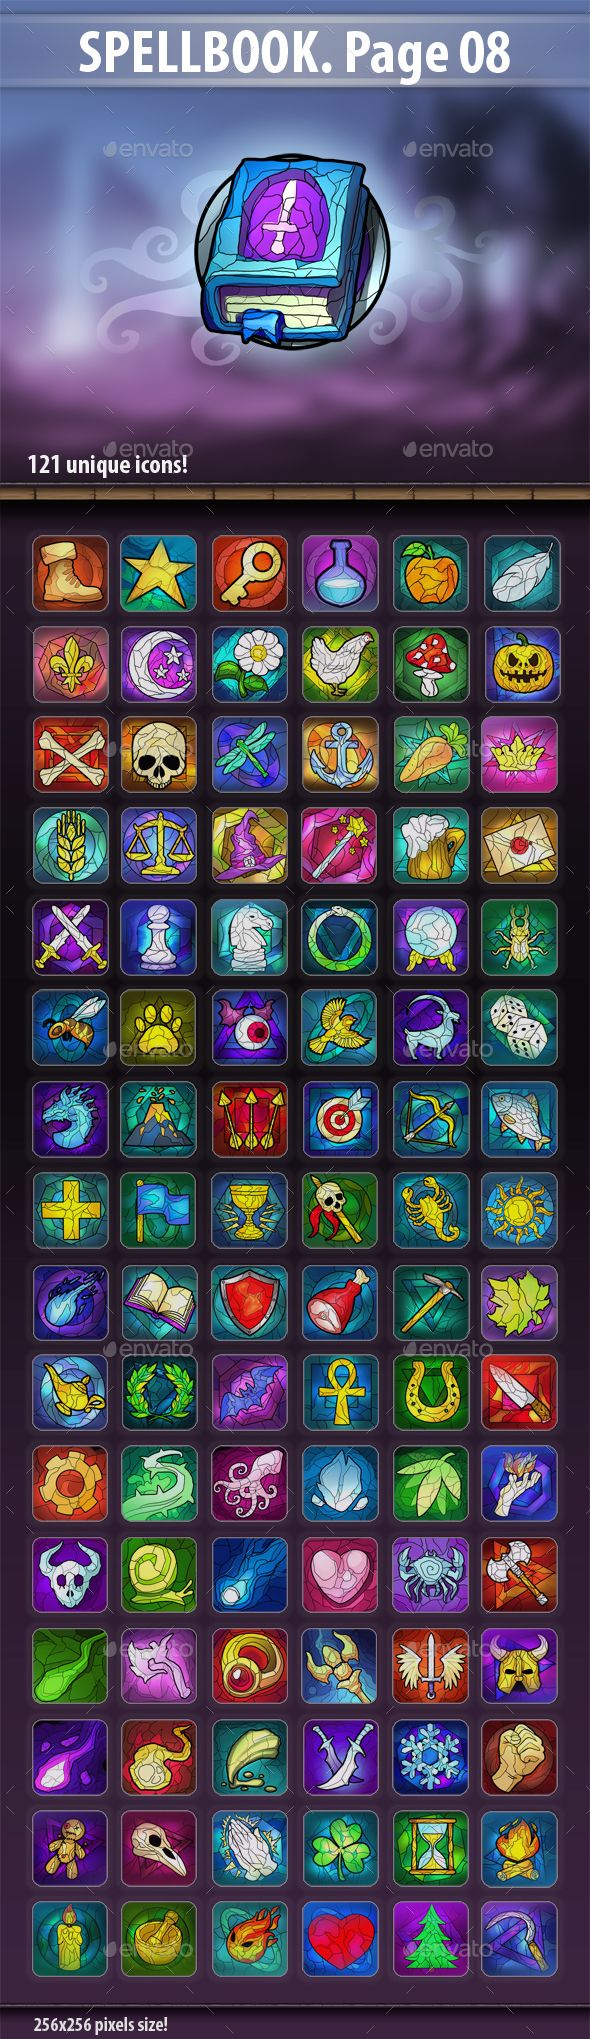 #SpellBook Page 08 - Miscellaneous #Game #Assets